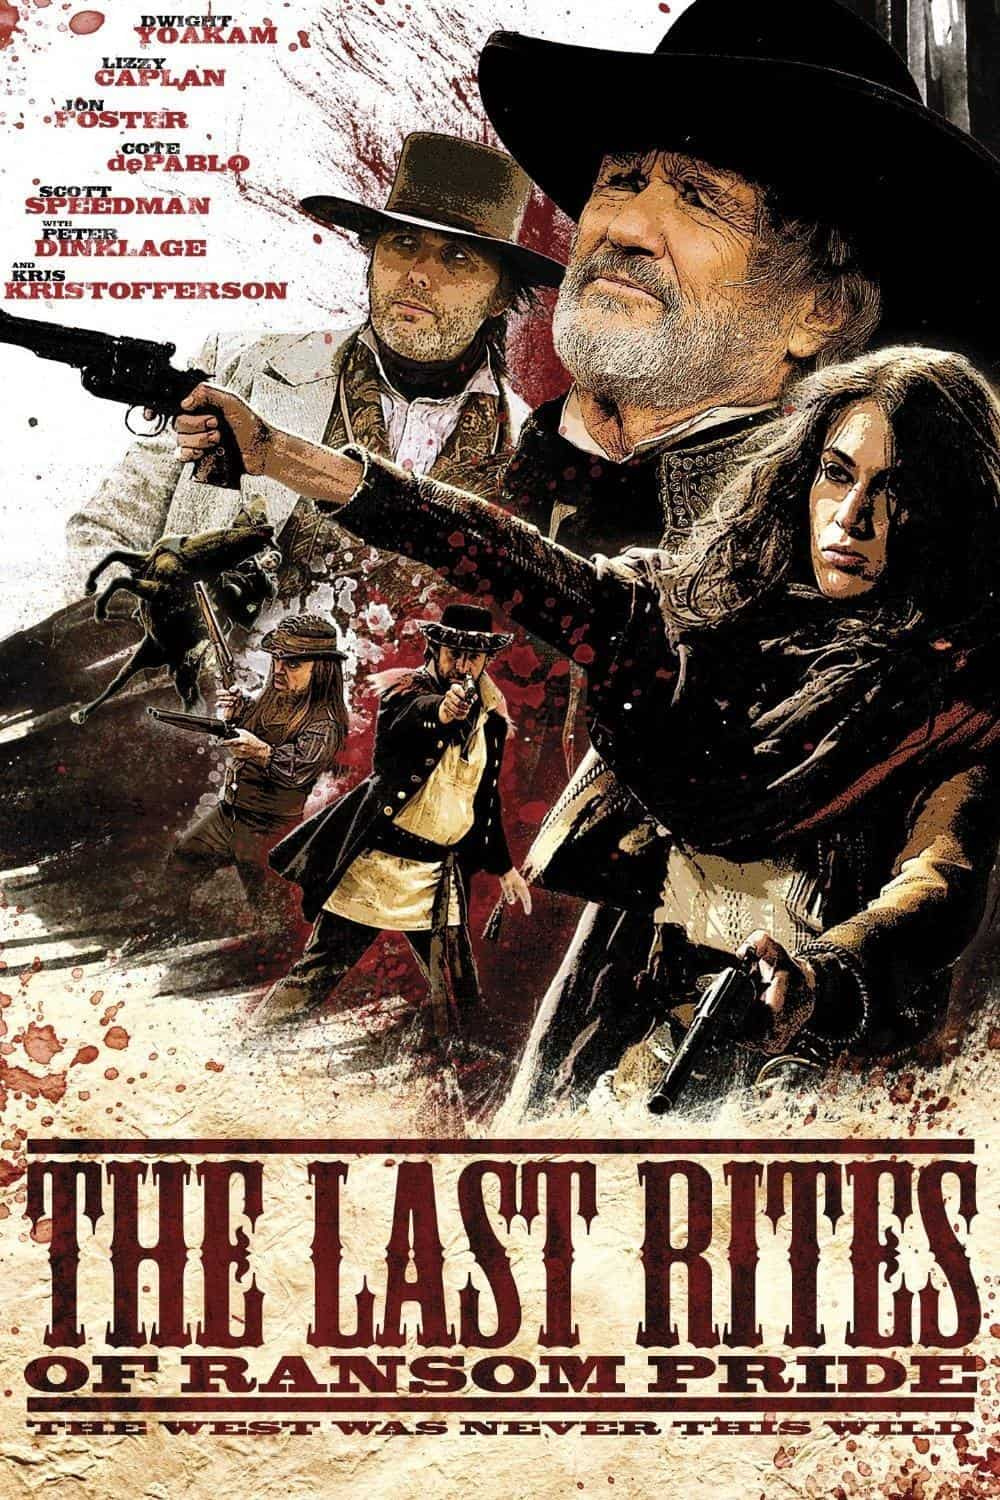 The Last Rites of Ransom Pride, 2010